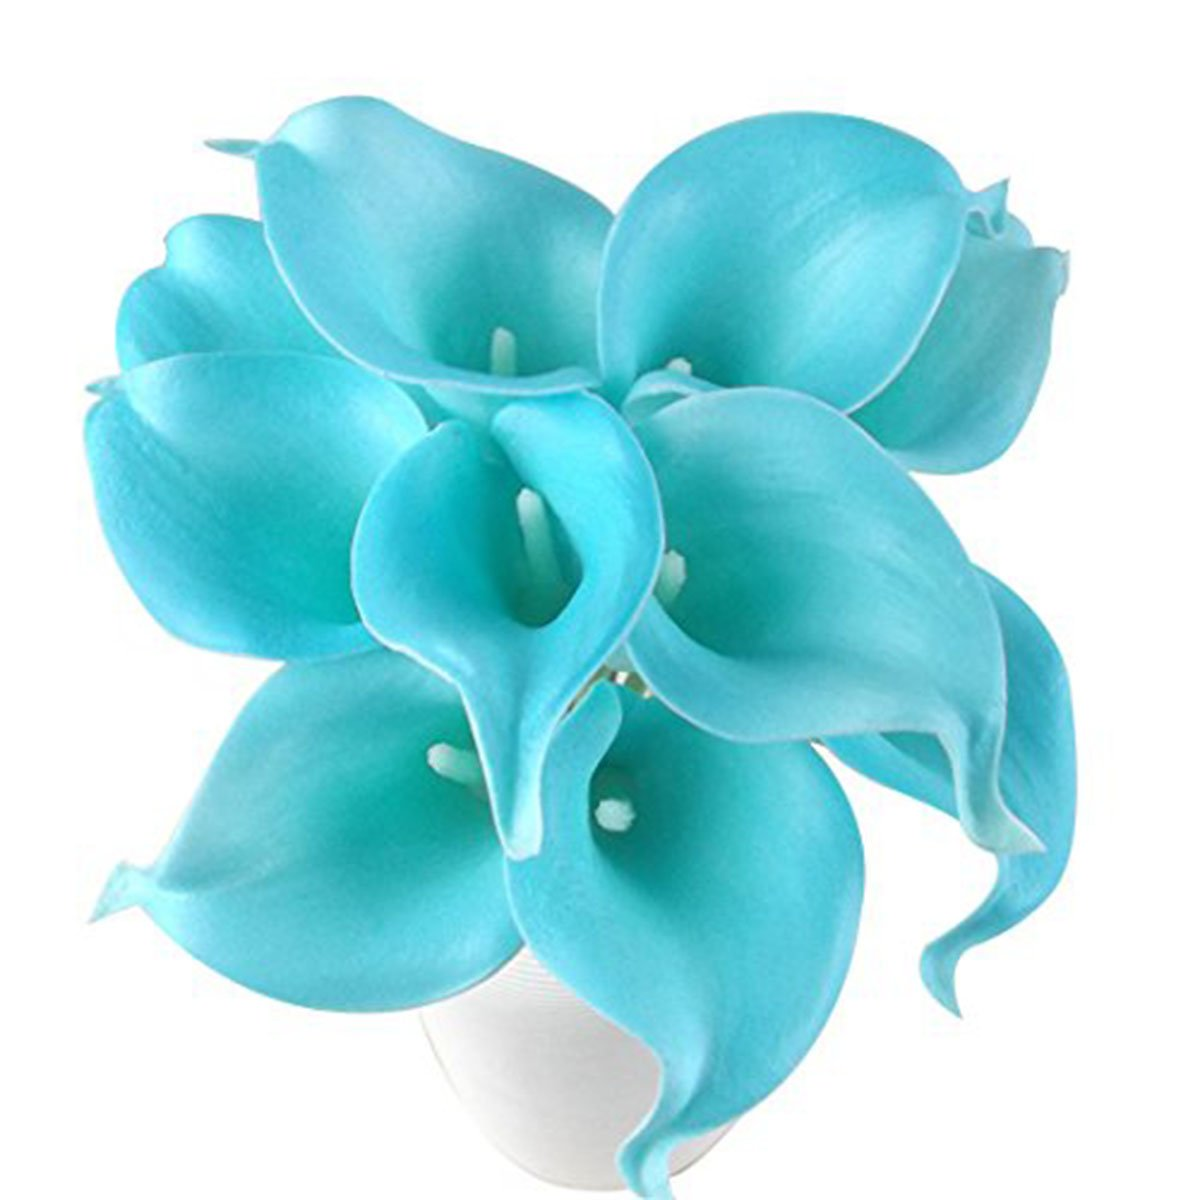 Latex Real Touch Artificial Jade Blue Calla Lily Flower Bouquet Wedding Party Home Bedroom Garden Restaurant Decoration - Bunch of 10 by UniGift